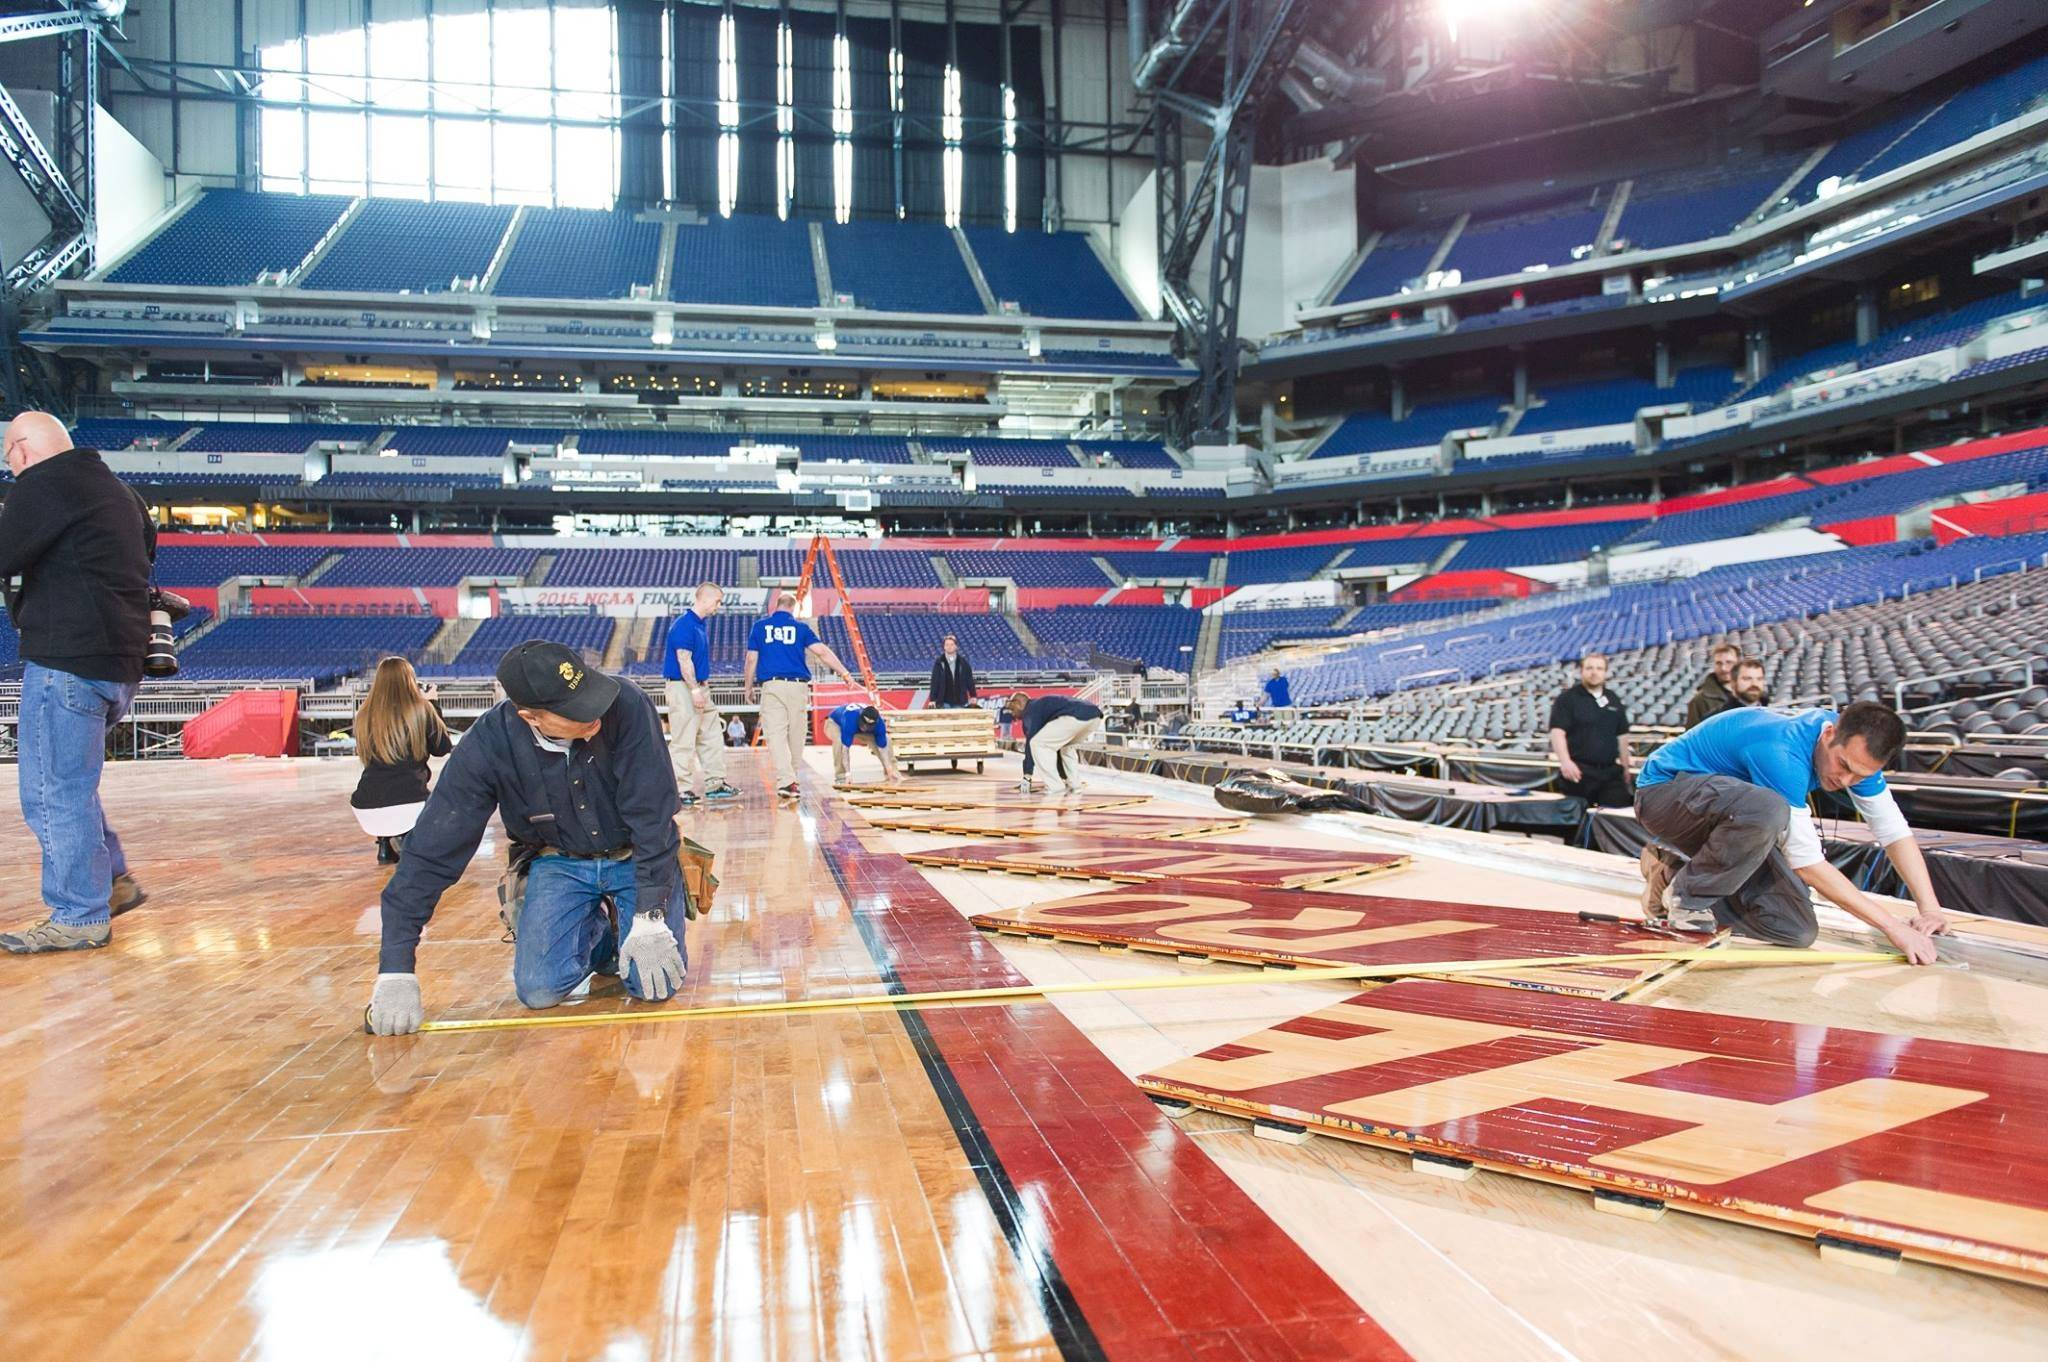 Andrew Campbell and Bruce Haroldson of Connor Sports helped install the basketball court on which the Final Four will be played in Indianapolis.